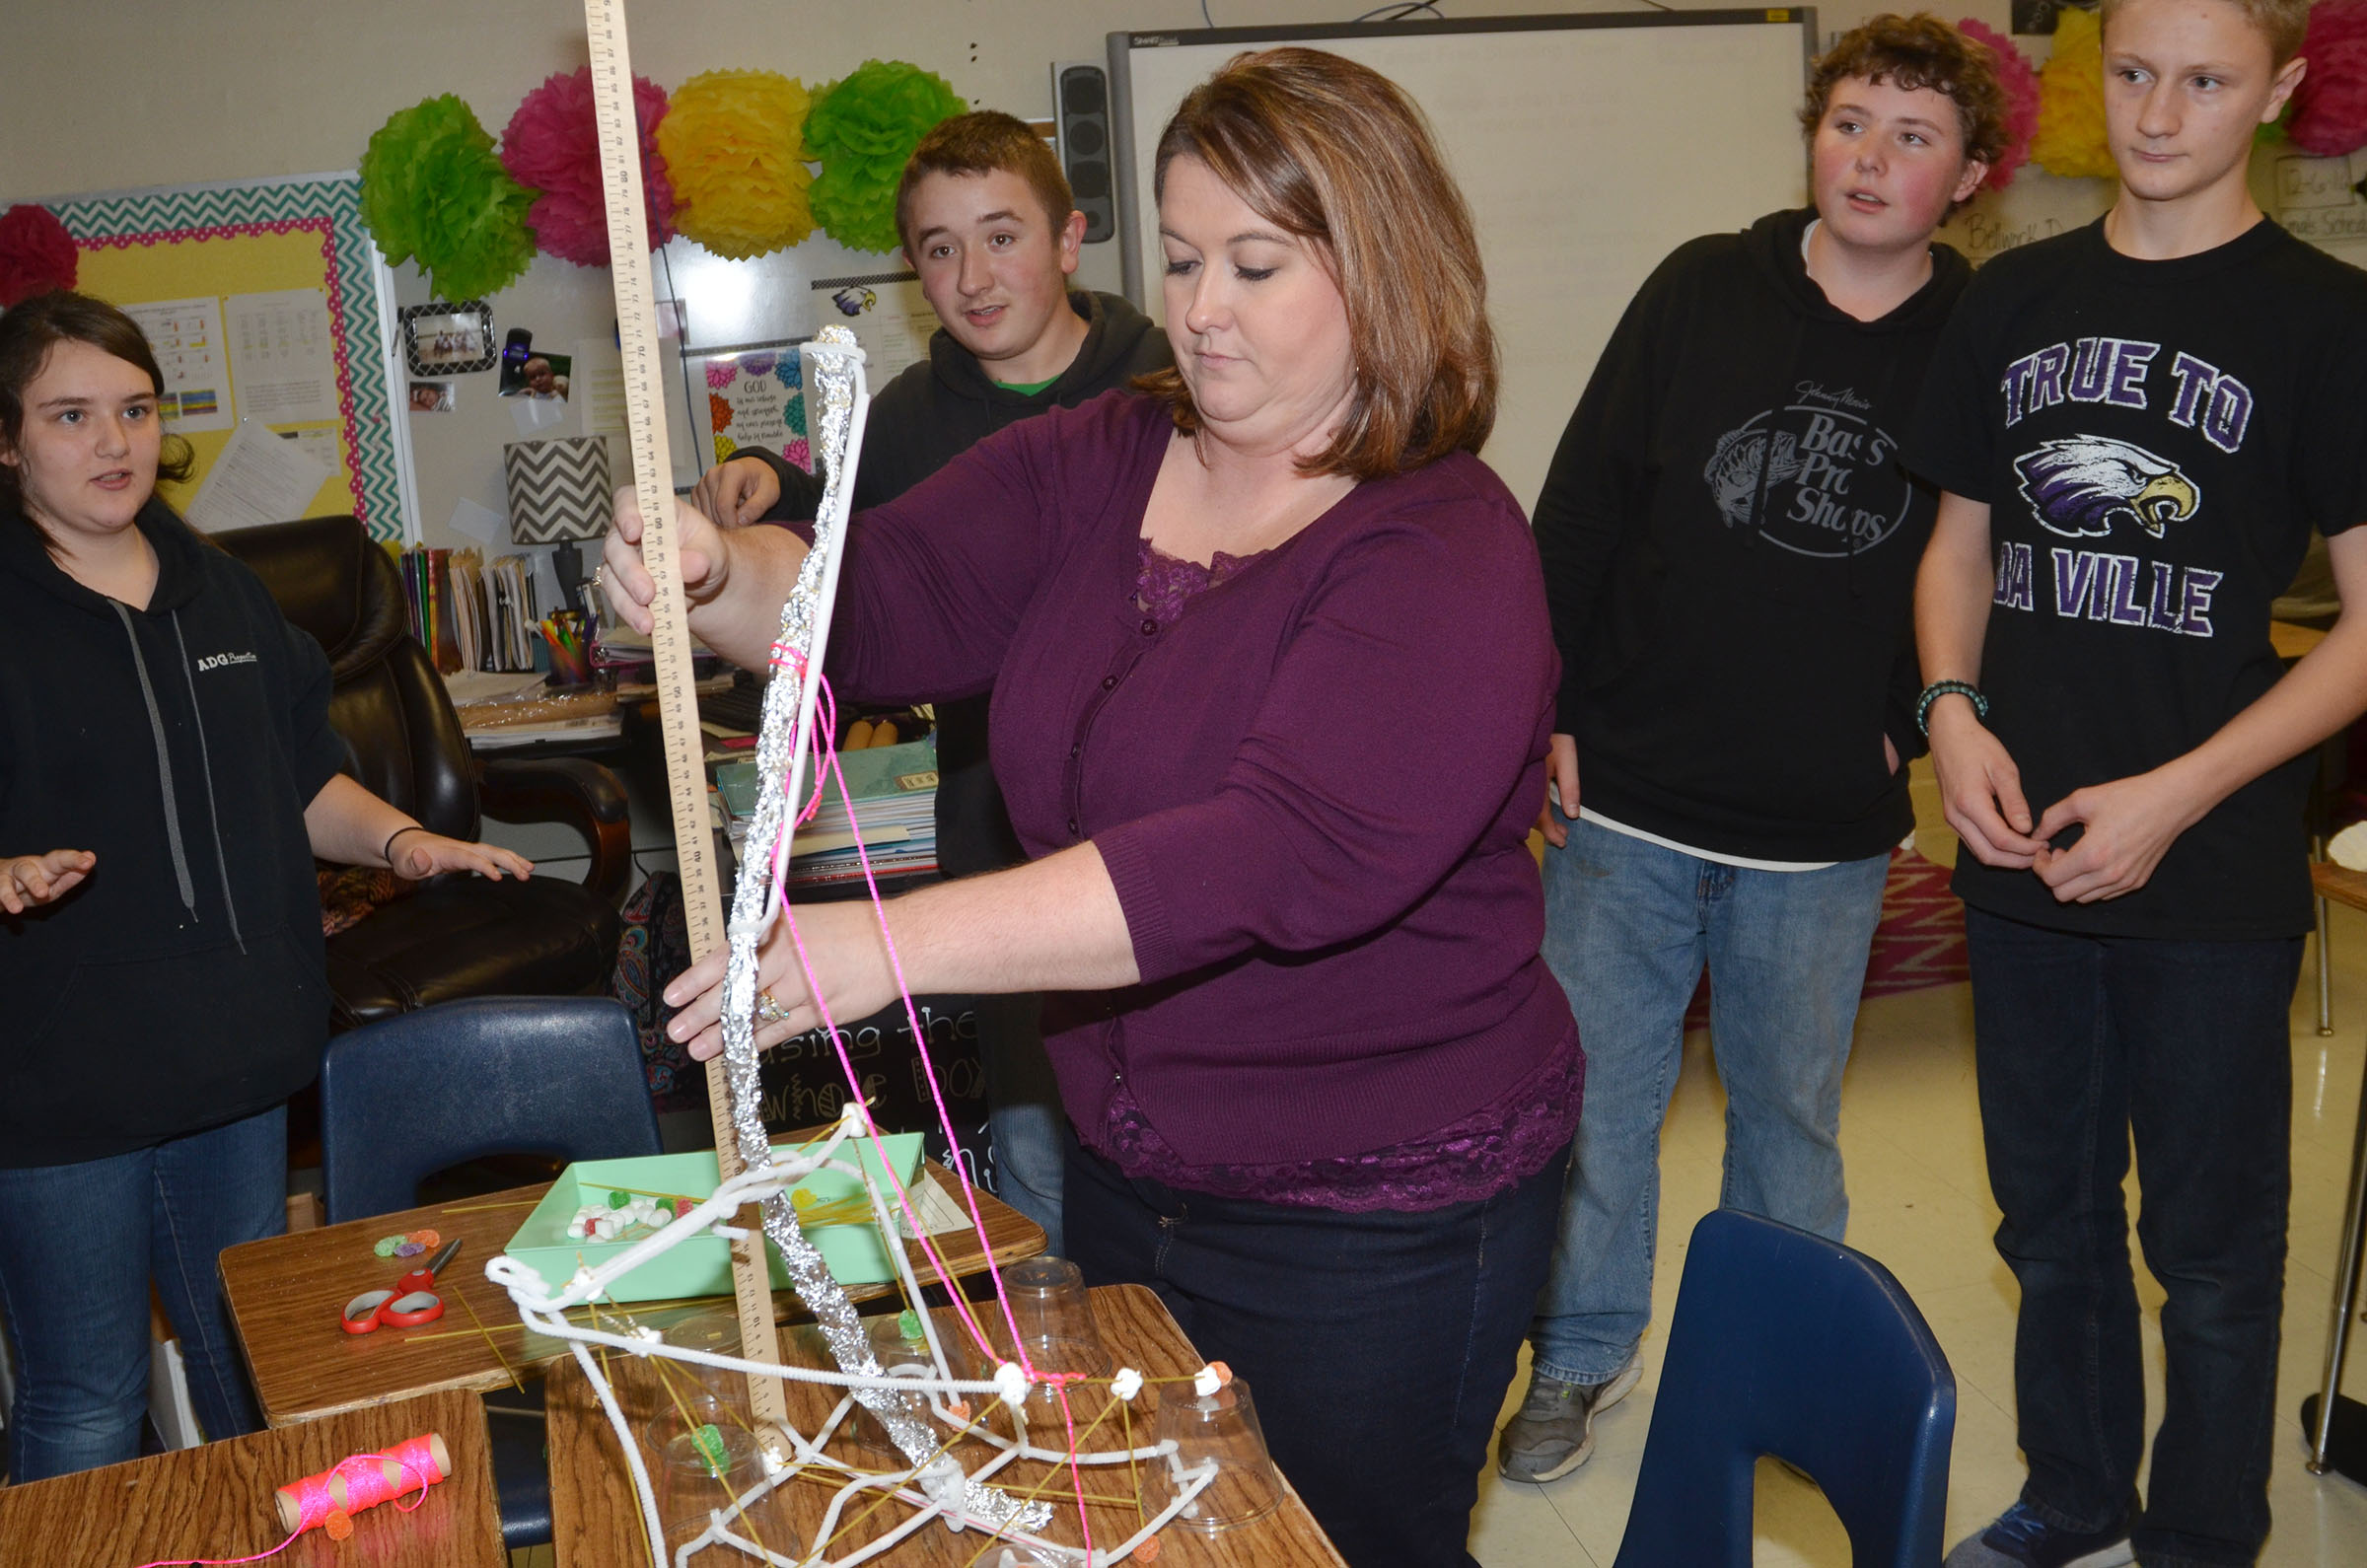 CMS integrated science teacher Amy Knifley measures to see if this structure, built by, from left, eighth-graders Haley Lopez, Zachary Shaw, Alex Howard and Jake Dicken, is the tallest.